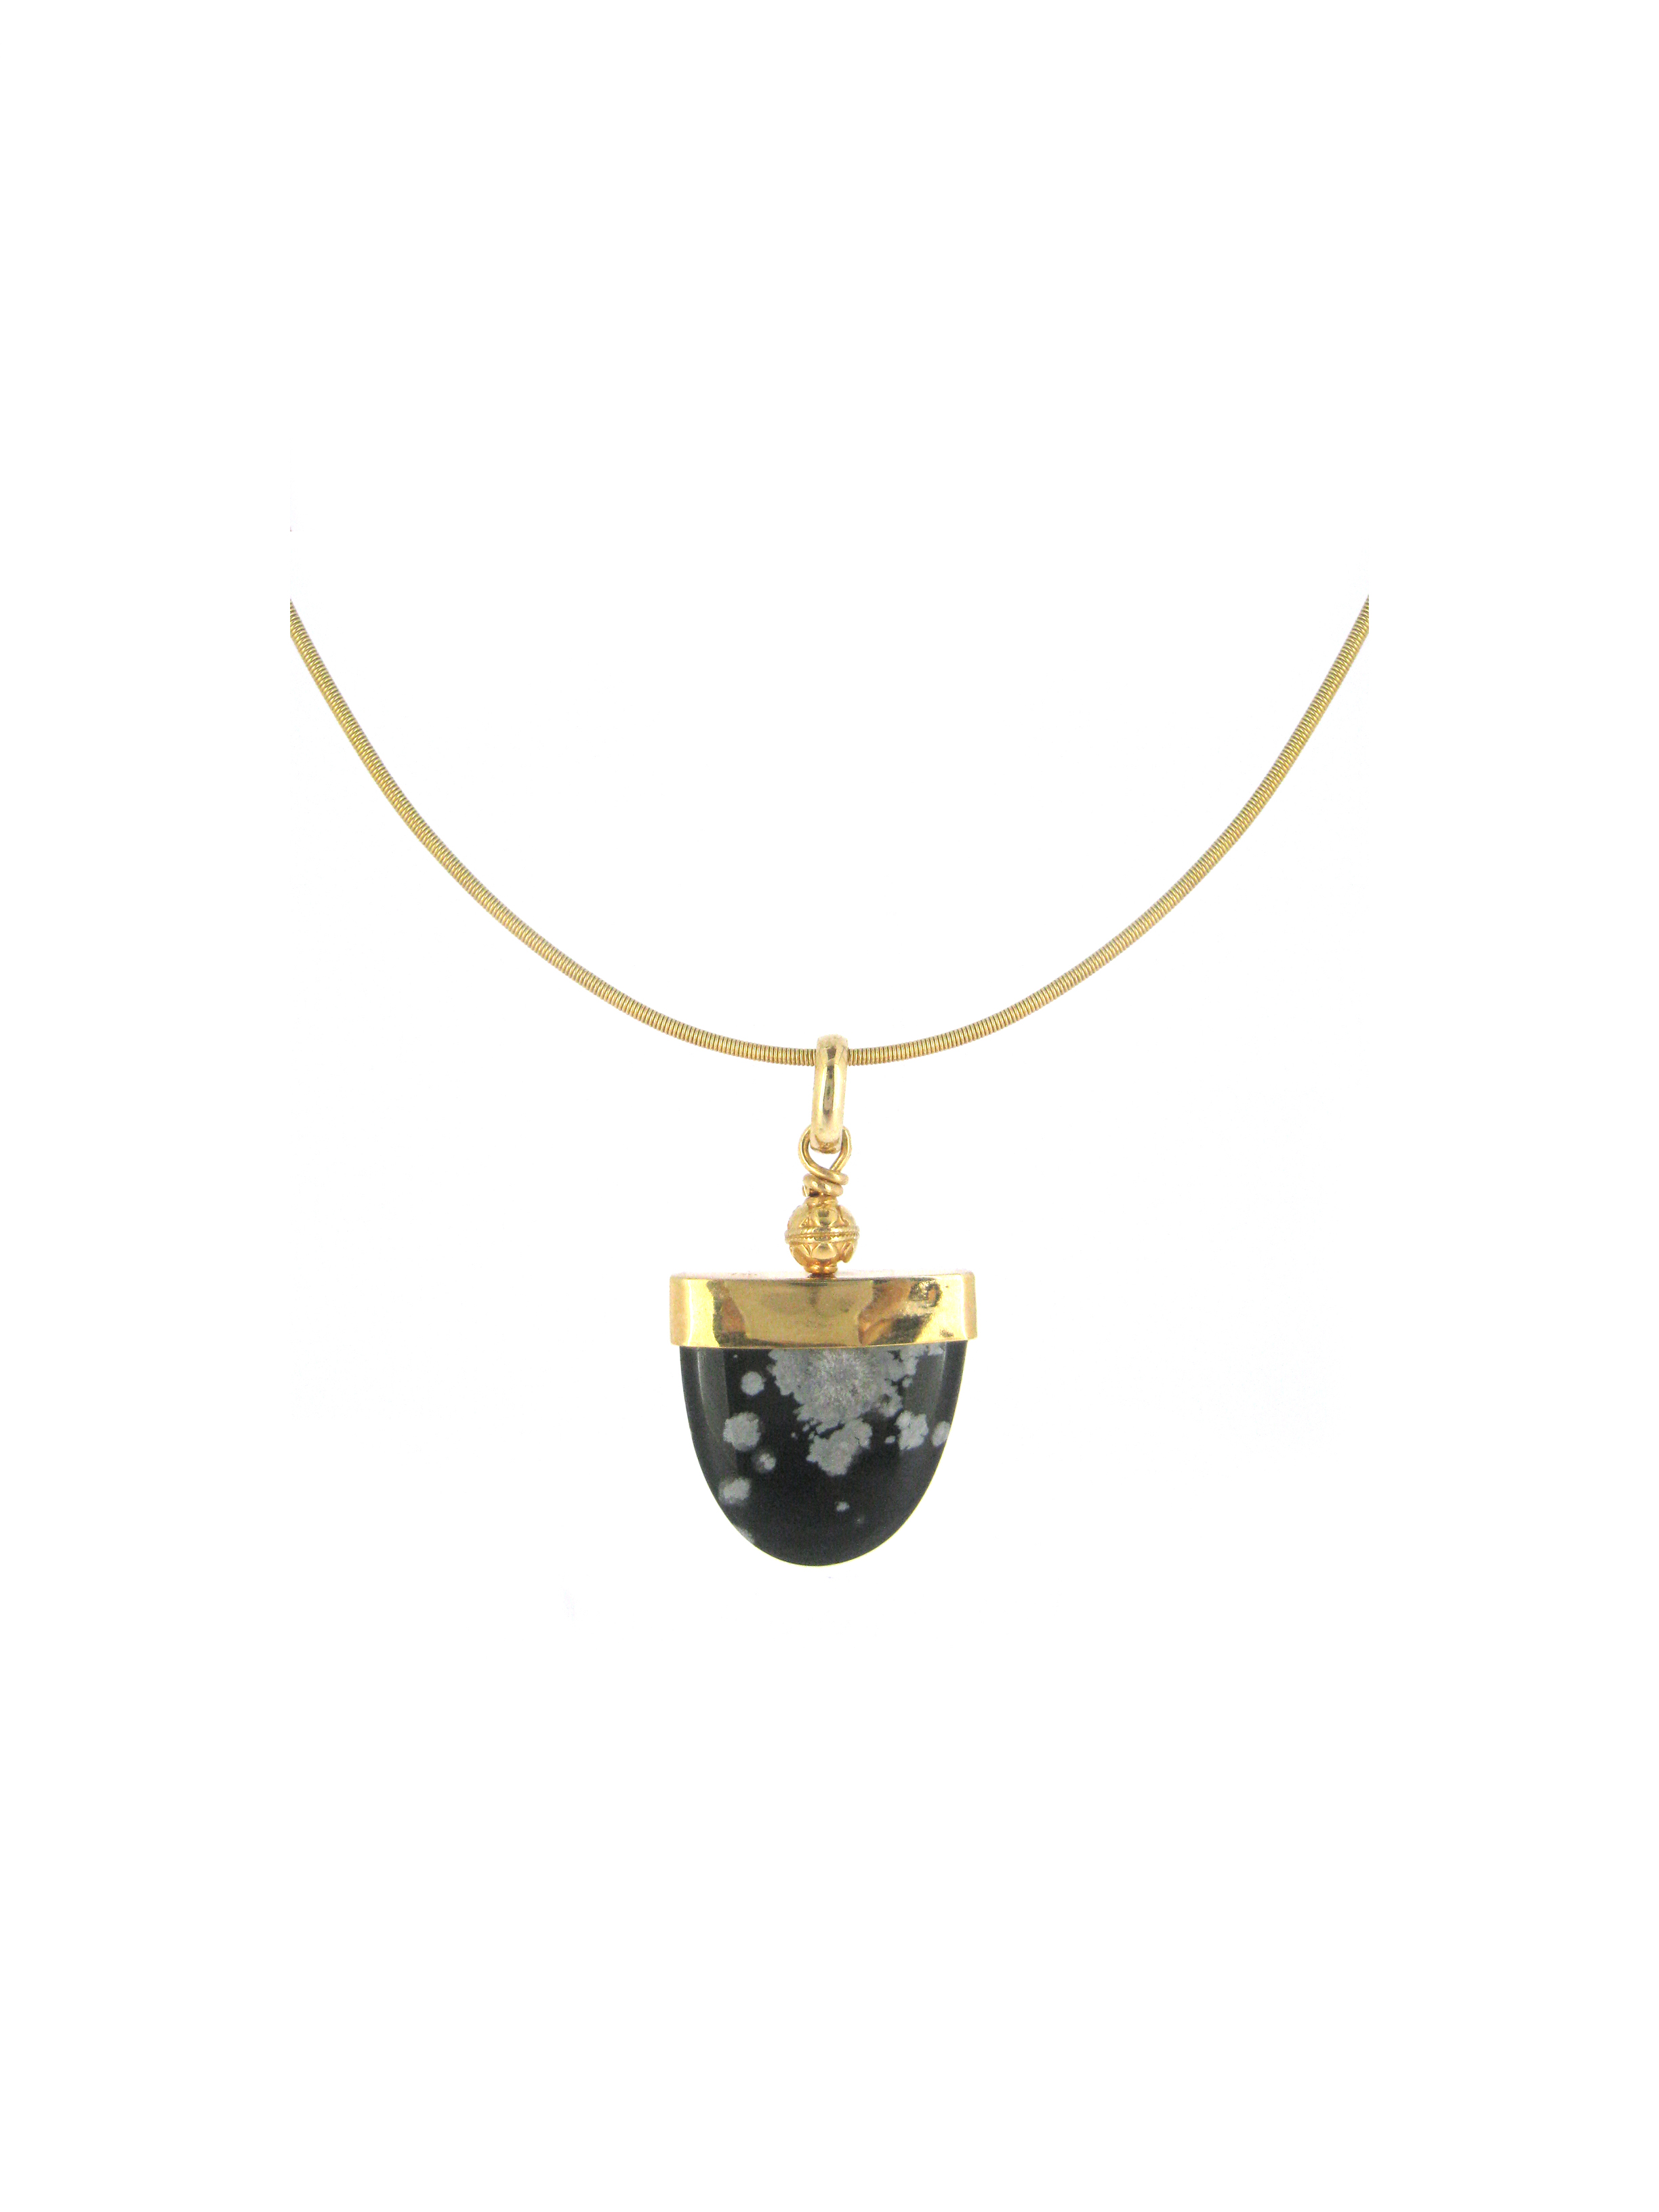 Snowflake obsidian Pendant is wrapped in 22K Gold and highlighted with handcrafted Indian Bead and finished in 18K